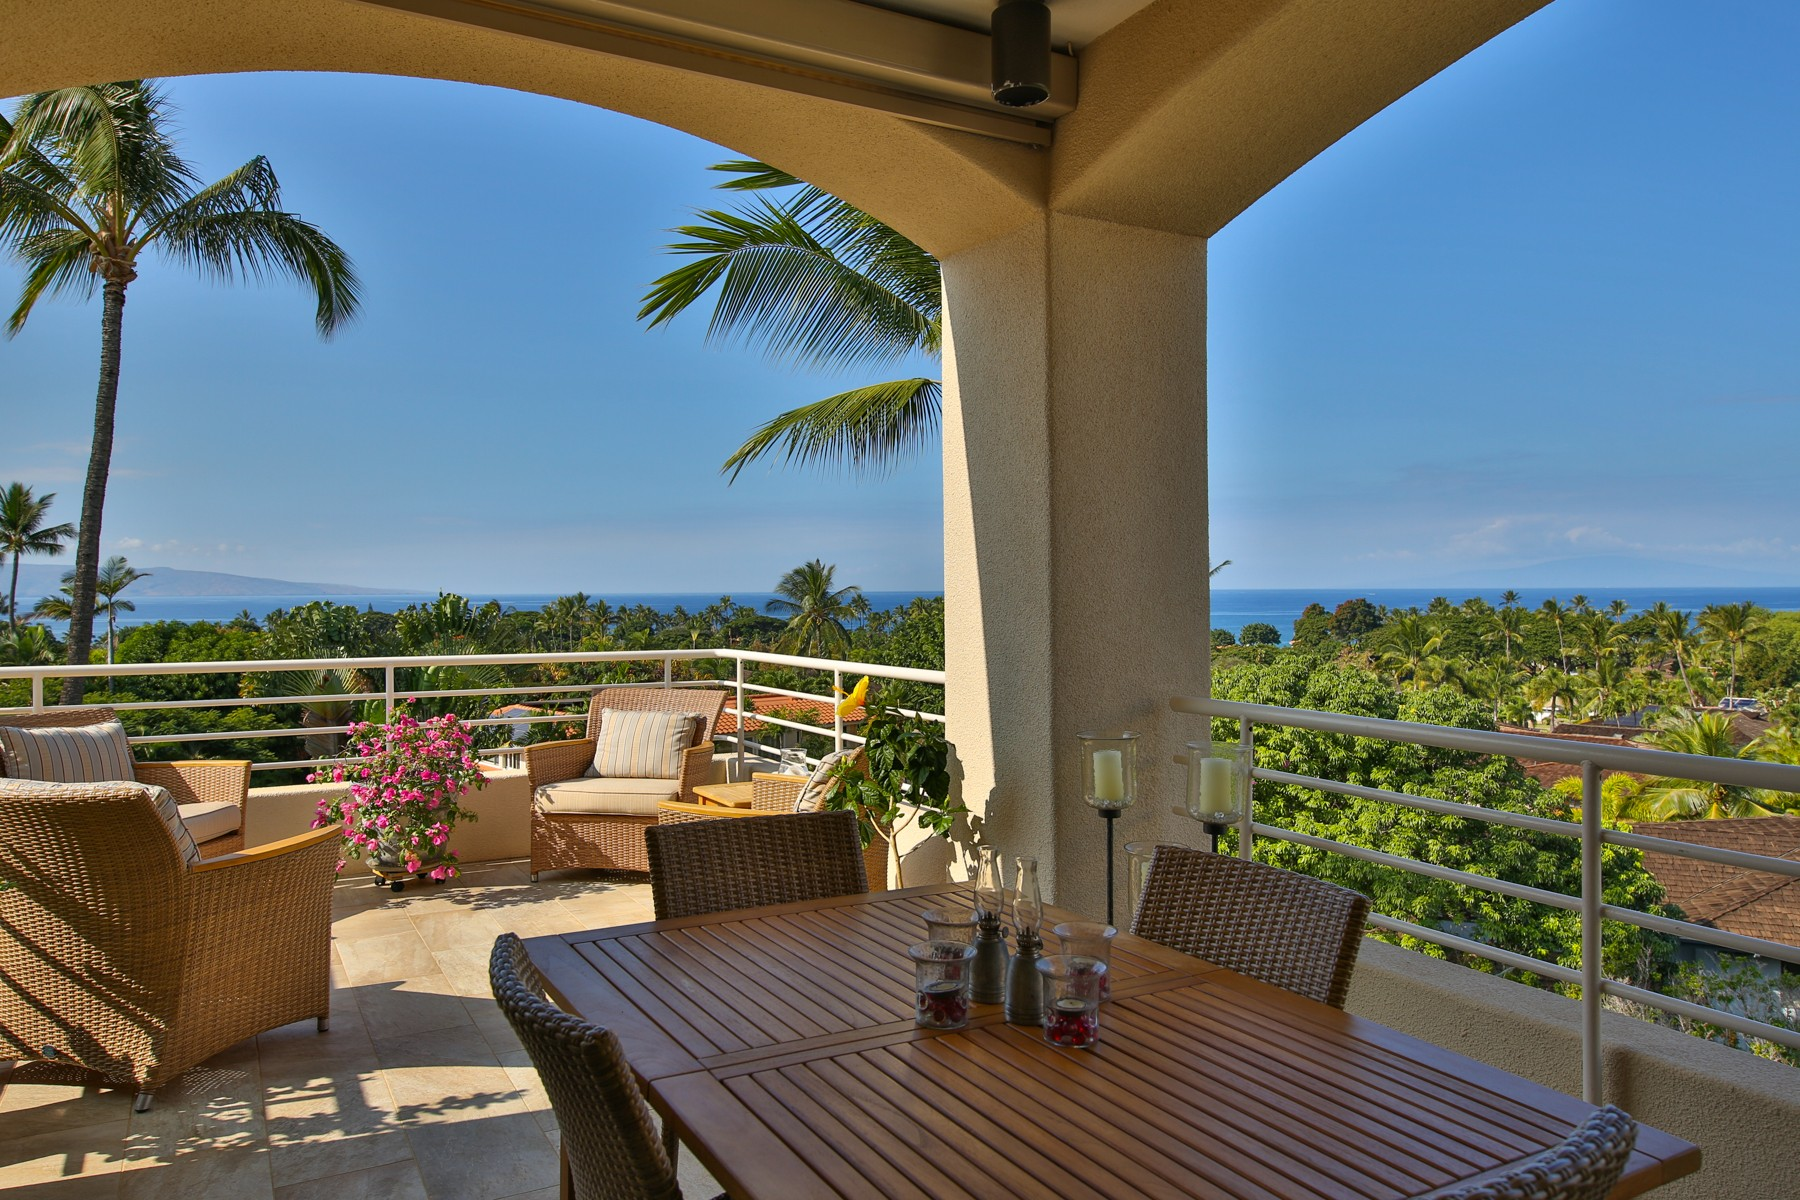 Condominium for Sale at Intriguing Ocean & Sunset Views All-Year-round 3150 Wailea Alanui Drive, Wailea Palms 3504 Wailea, Hawaii 96753 United States